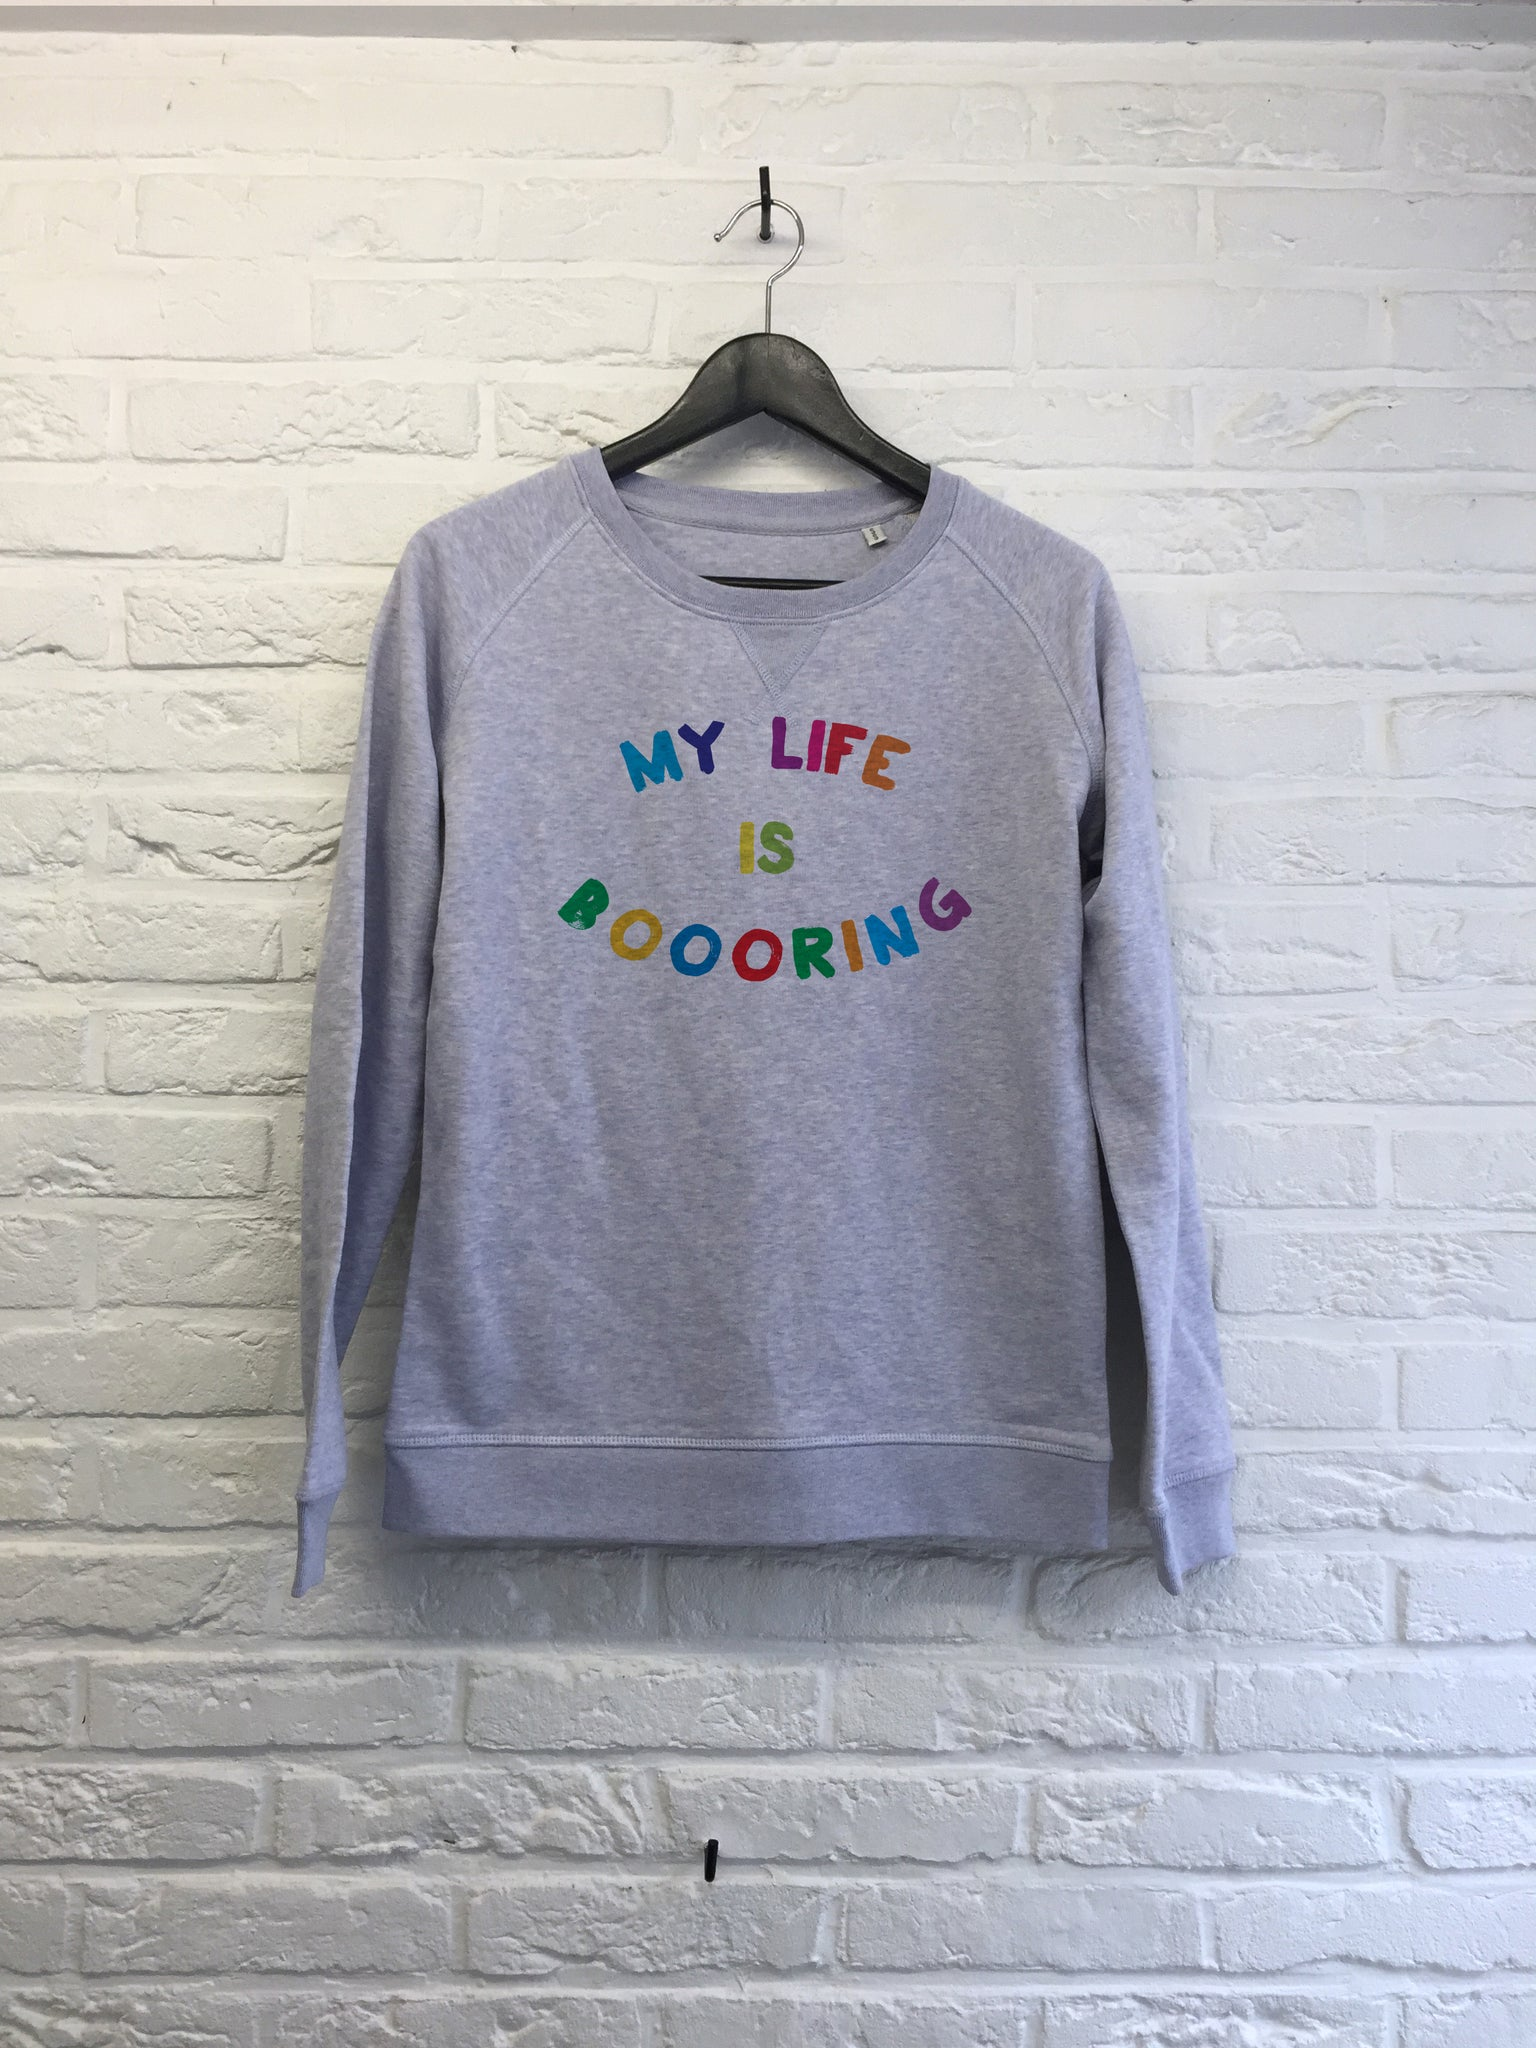 My life is boring - Sweat - Femme-Sweat shirts-Atelier Amelot